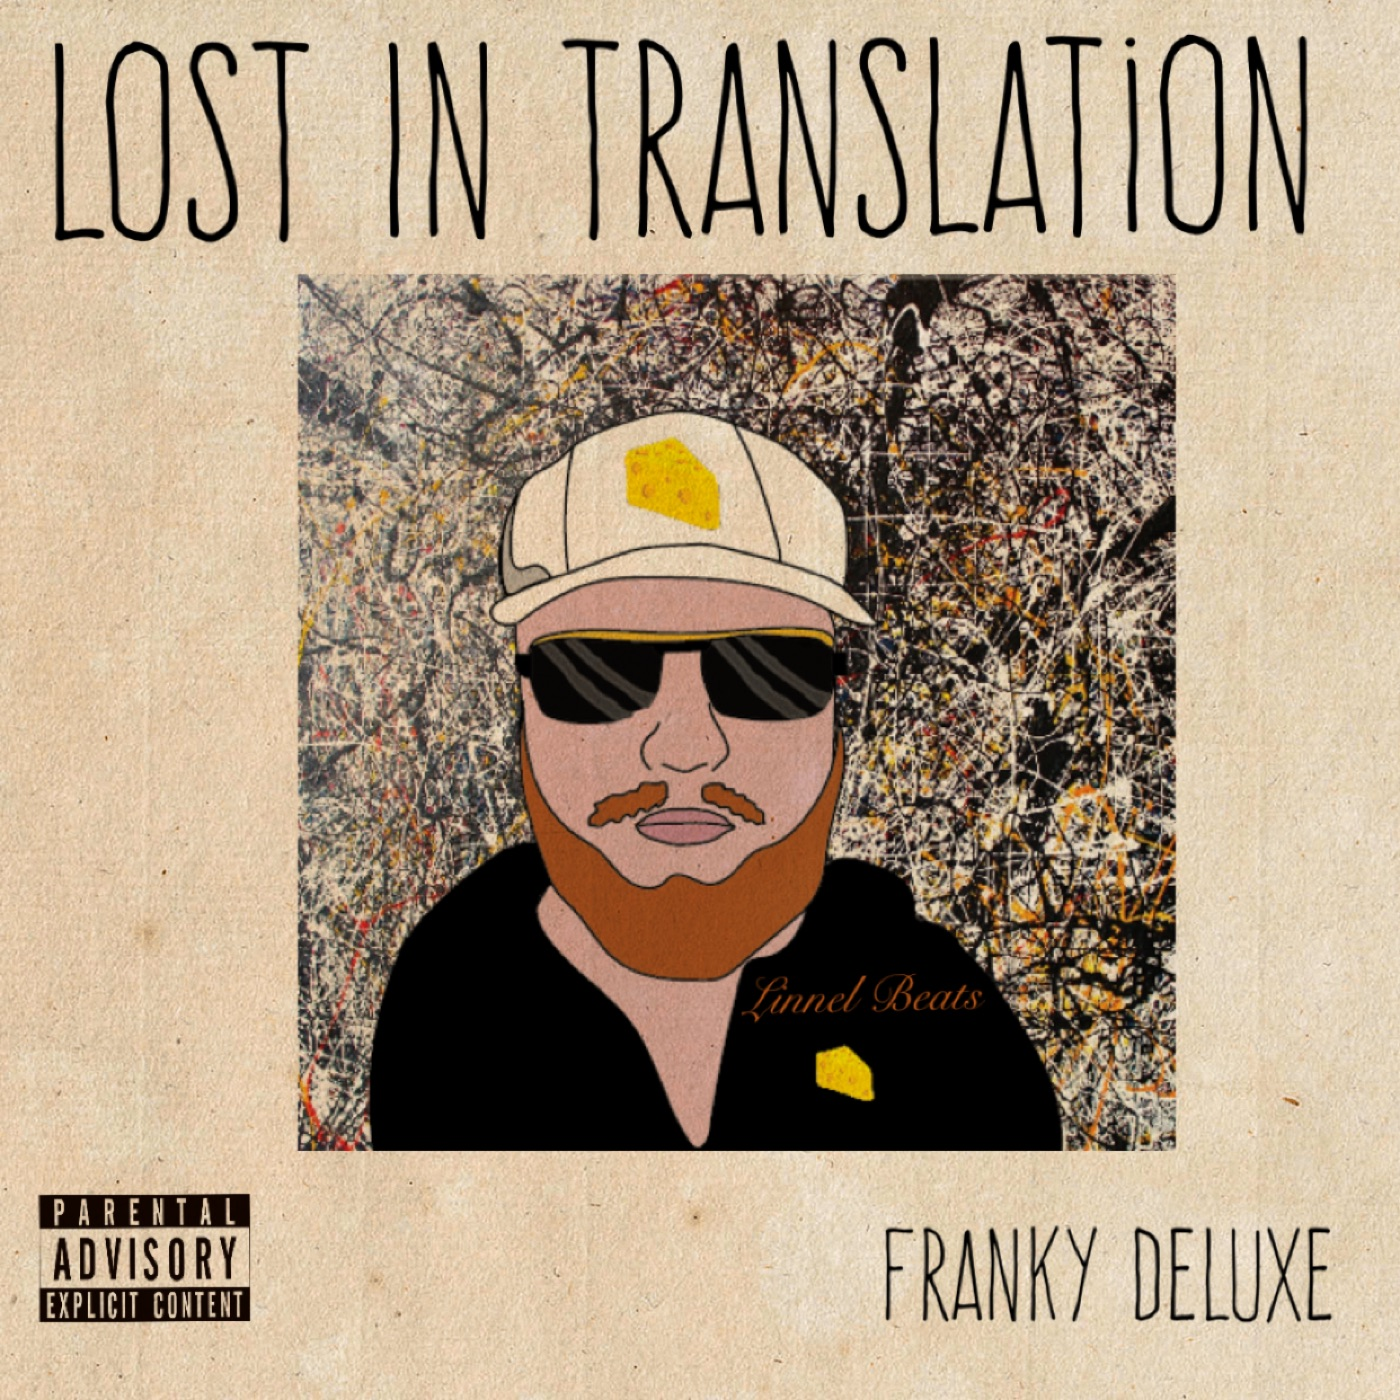 New Music: Franky Deluxe - Lost In Translation | @chayse26